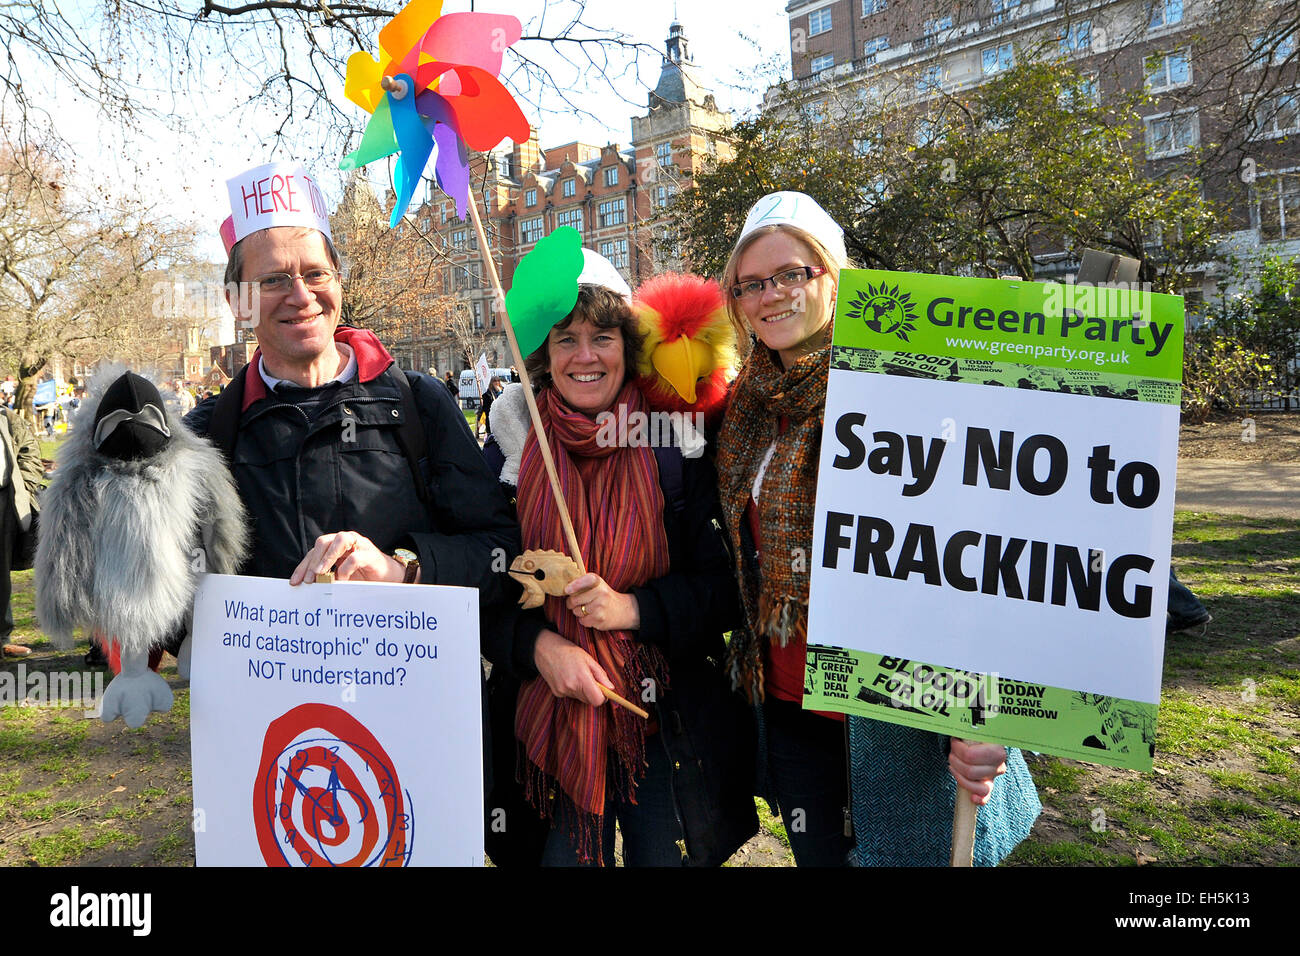 London, UK. 7th March, 2015. As part of the 'Time to Act' demonstration today, Robert, Helen and Sarah have - Stock Image